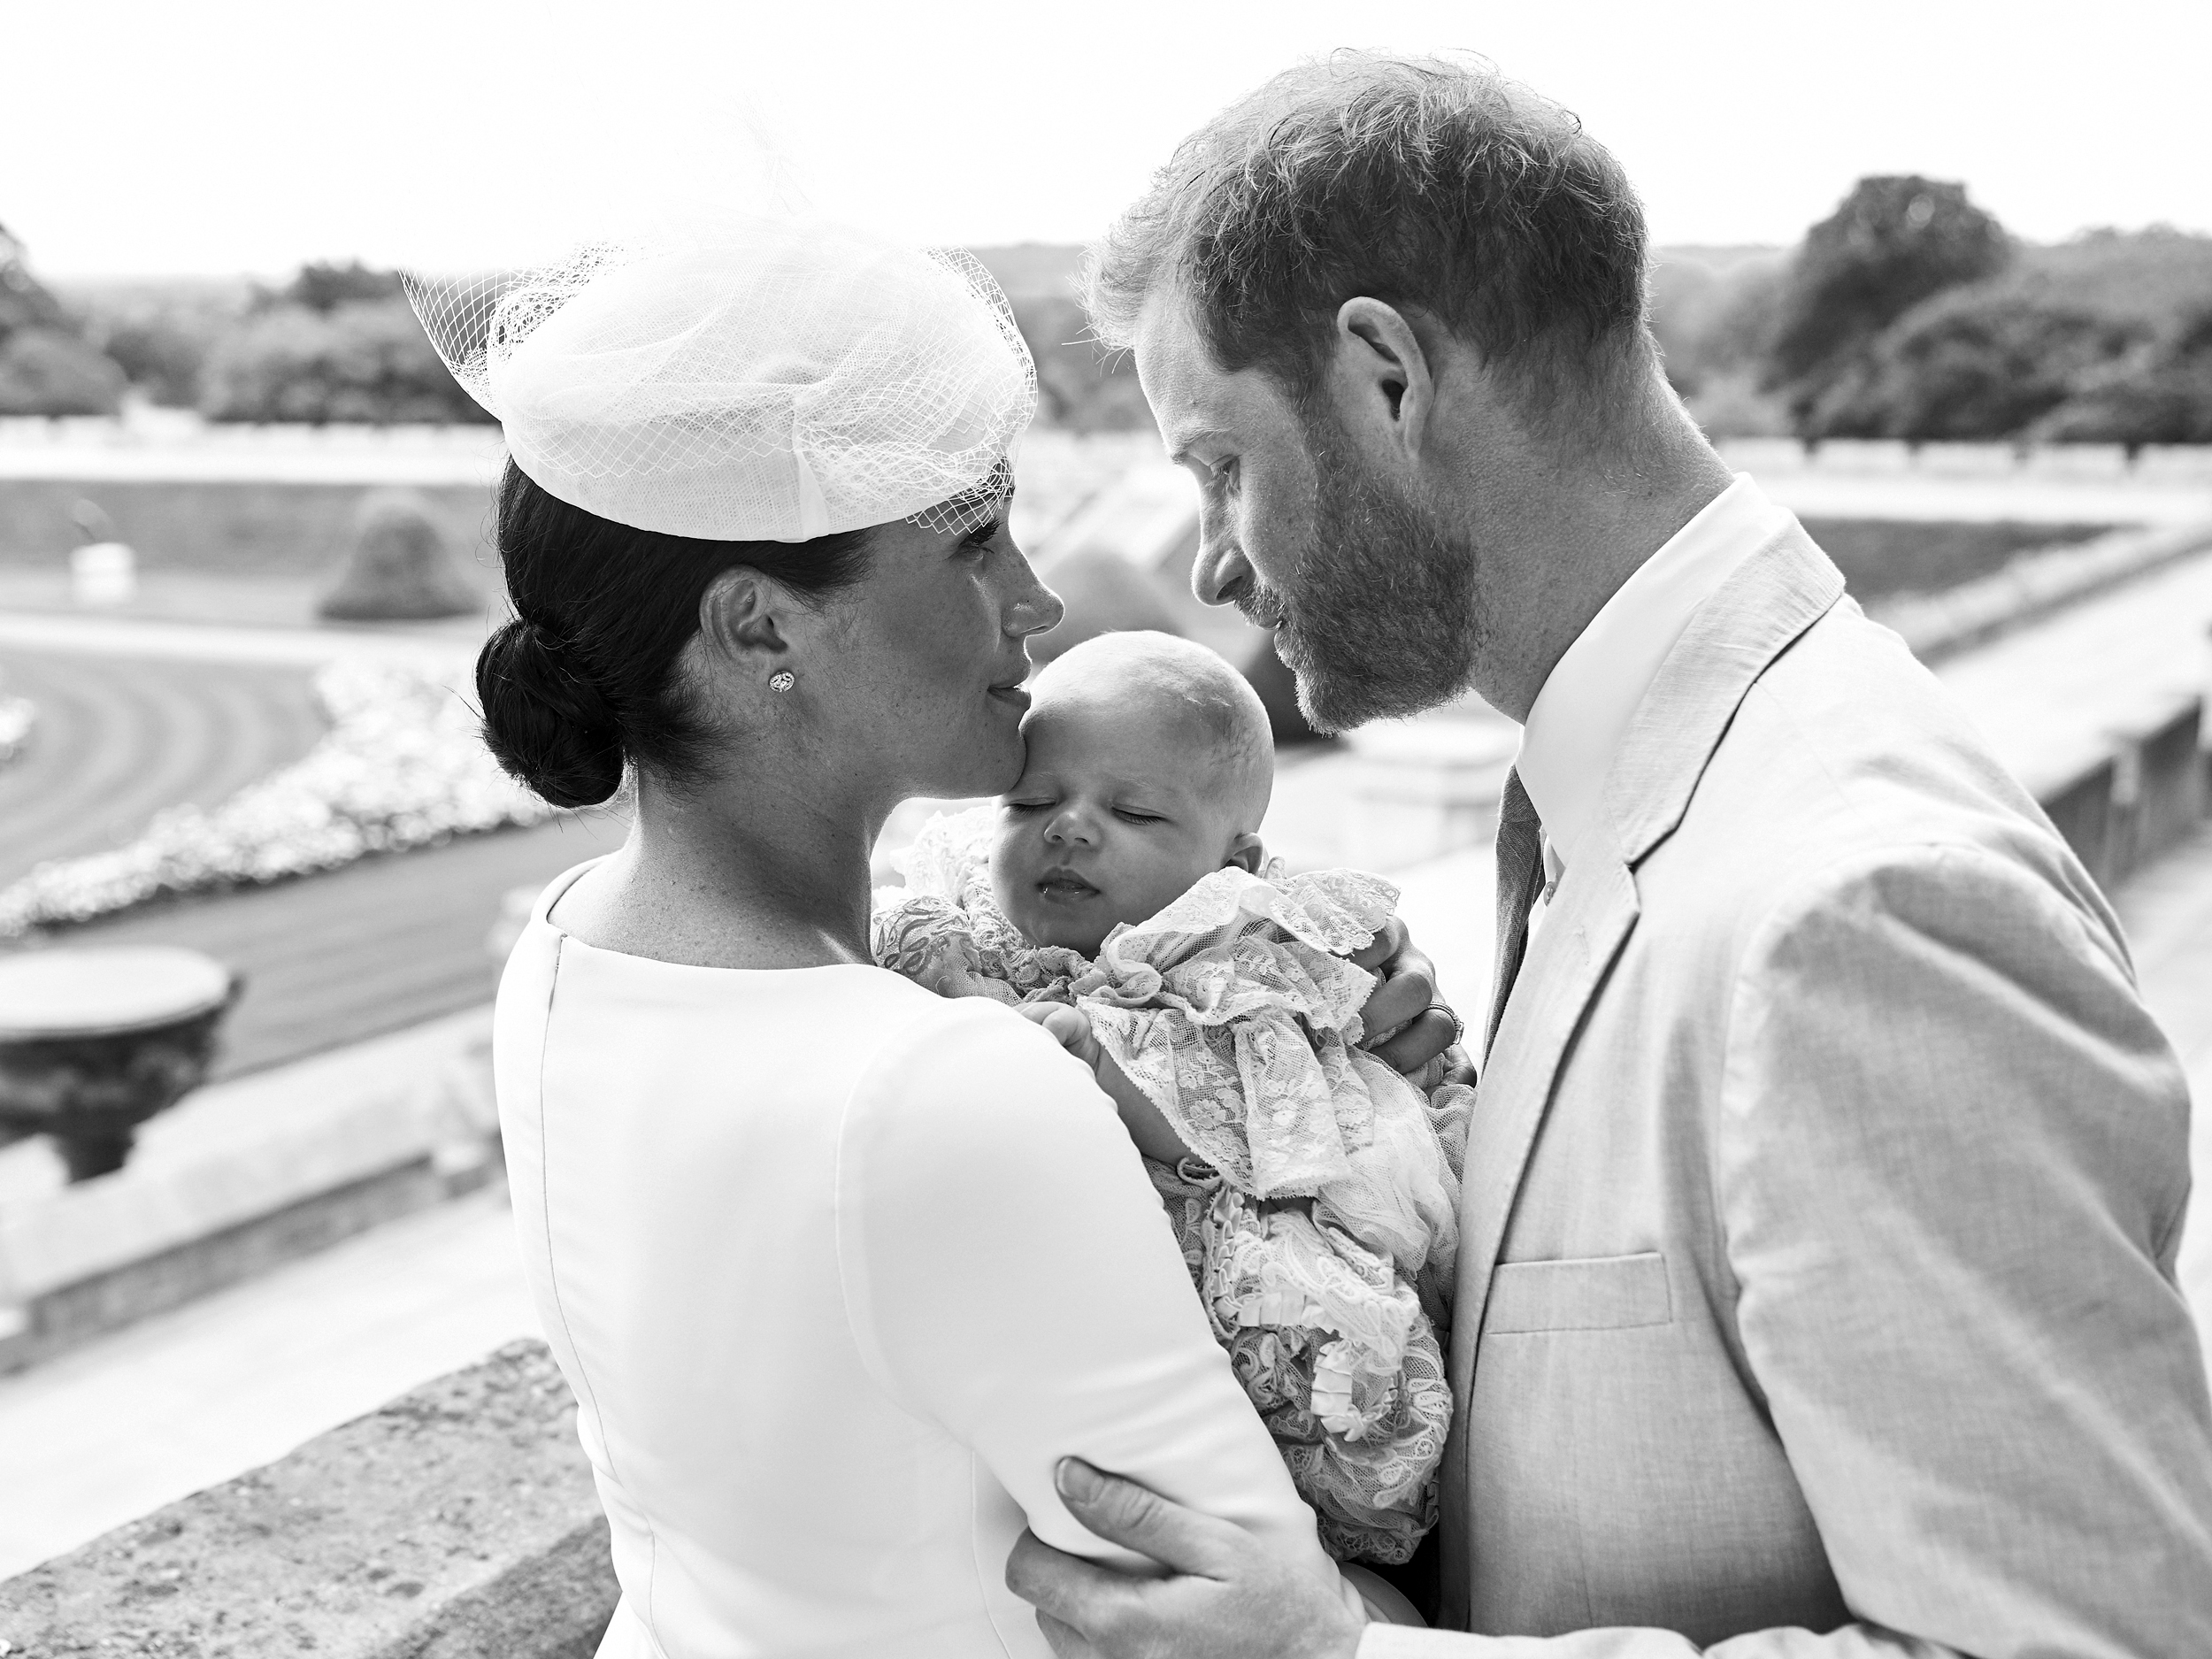 prince harry and meghan markle s baby archie is christened in private ceremony https www nbcnews com news world prince harry meghan markle s baby archie christened private ceremony n1027066